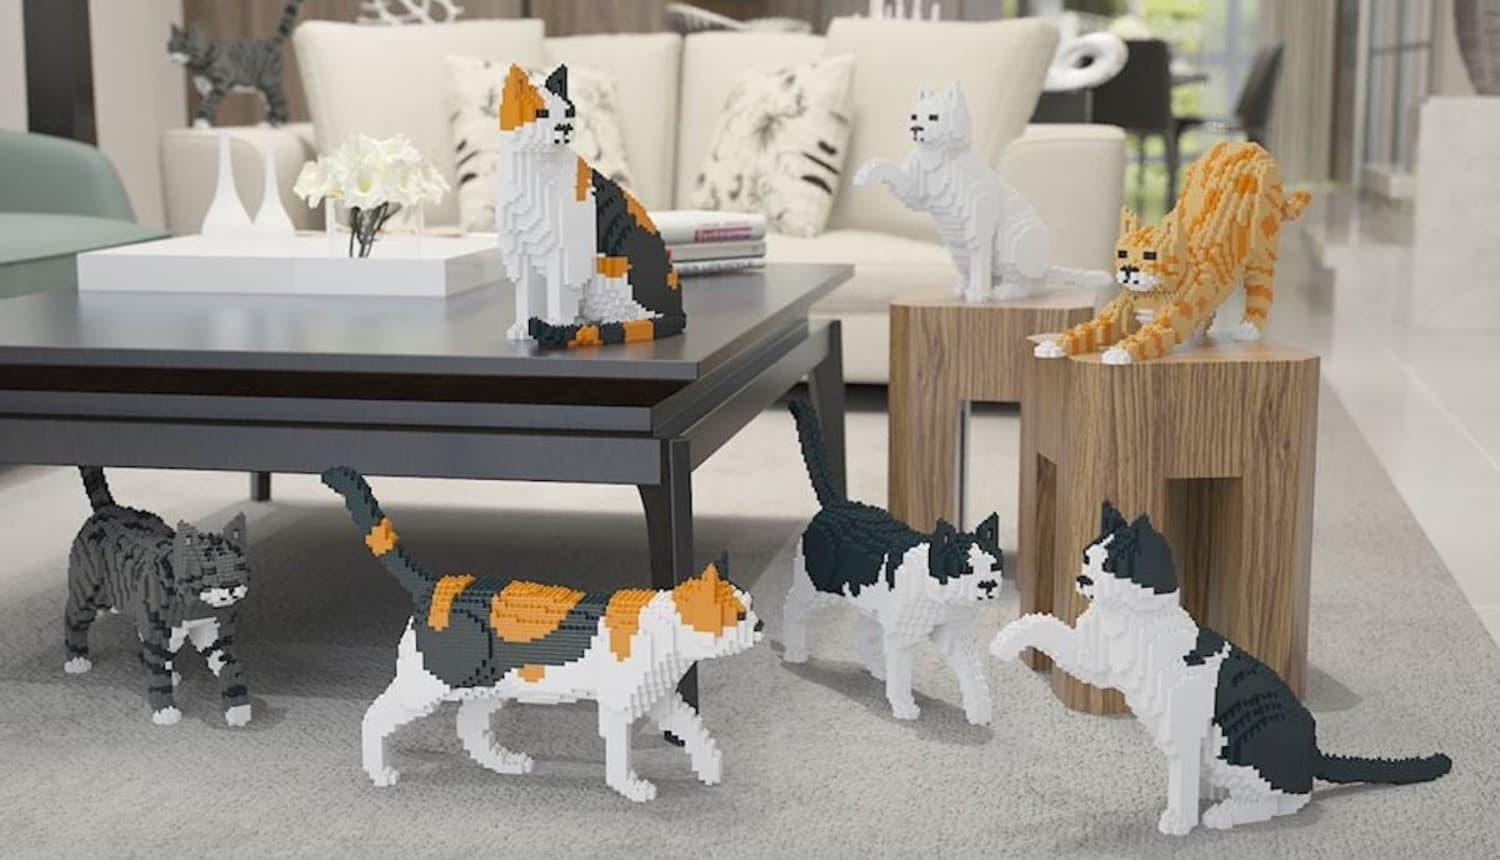 You Can Build Your Own Life-Size Cat Using These Blocks